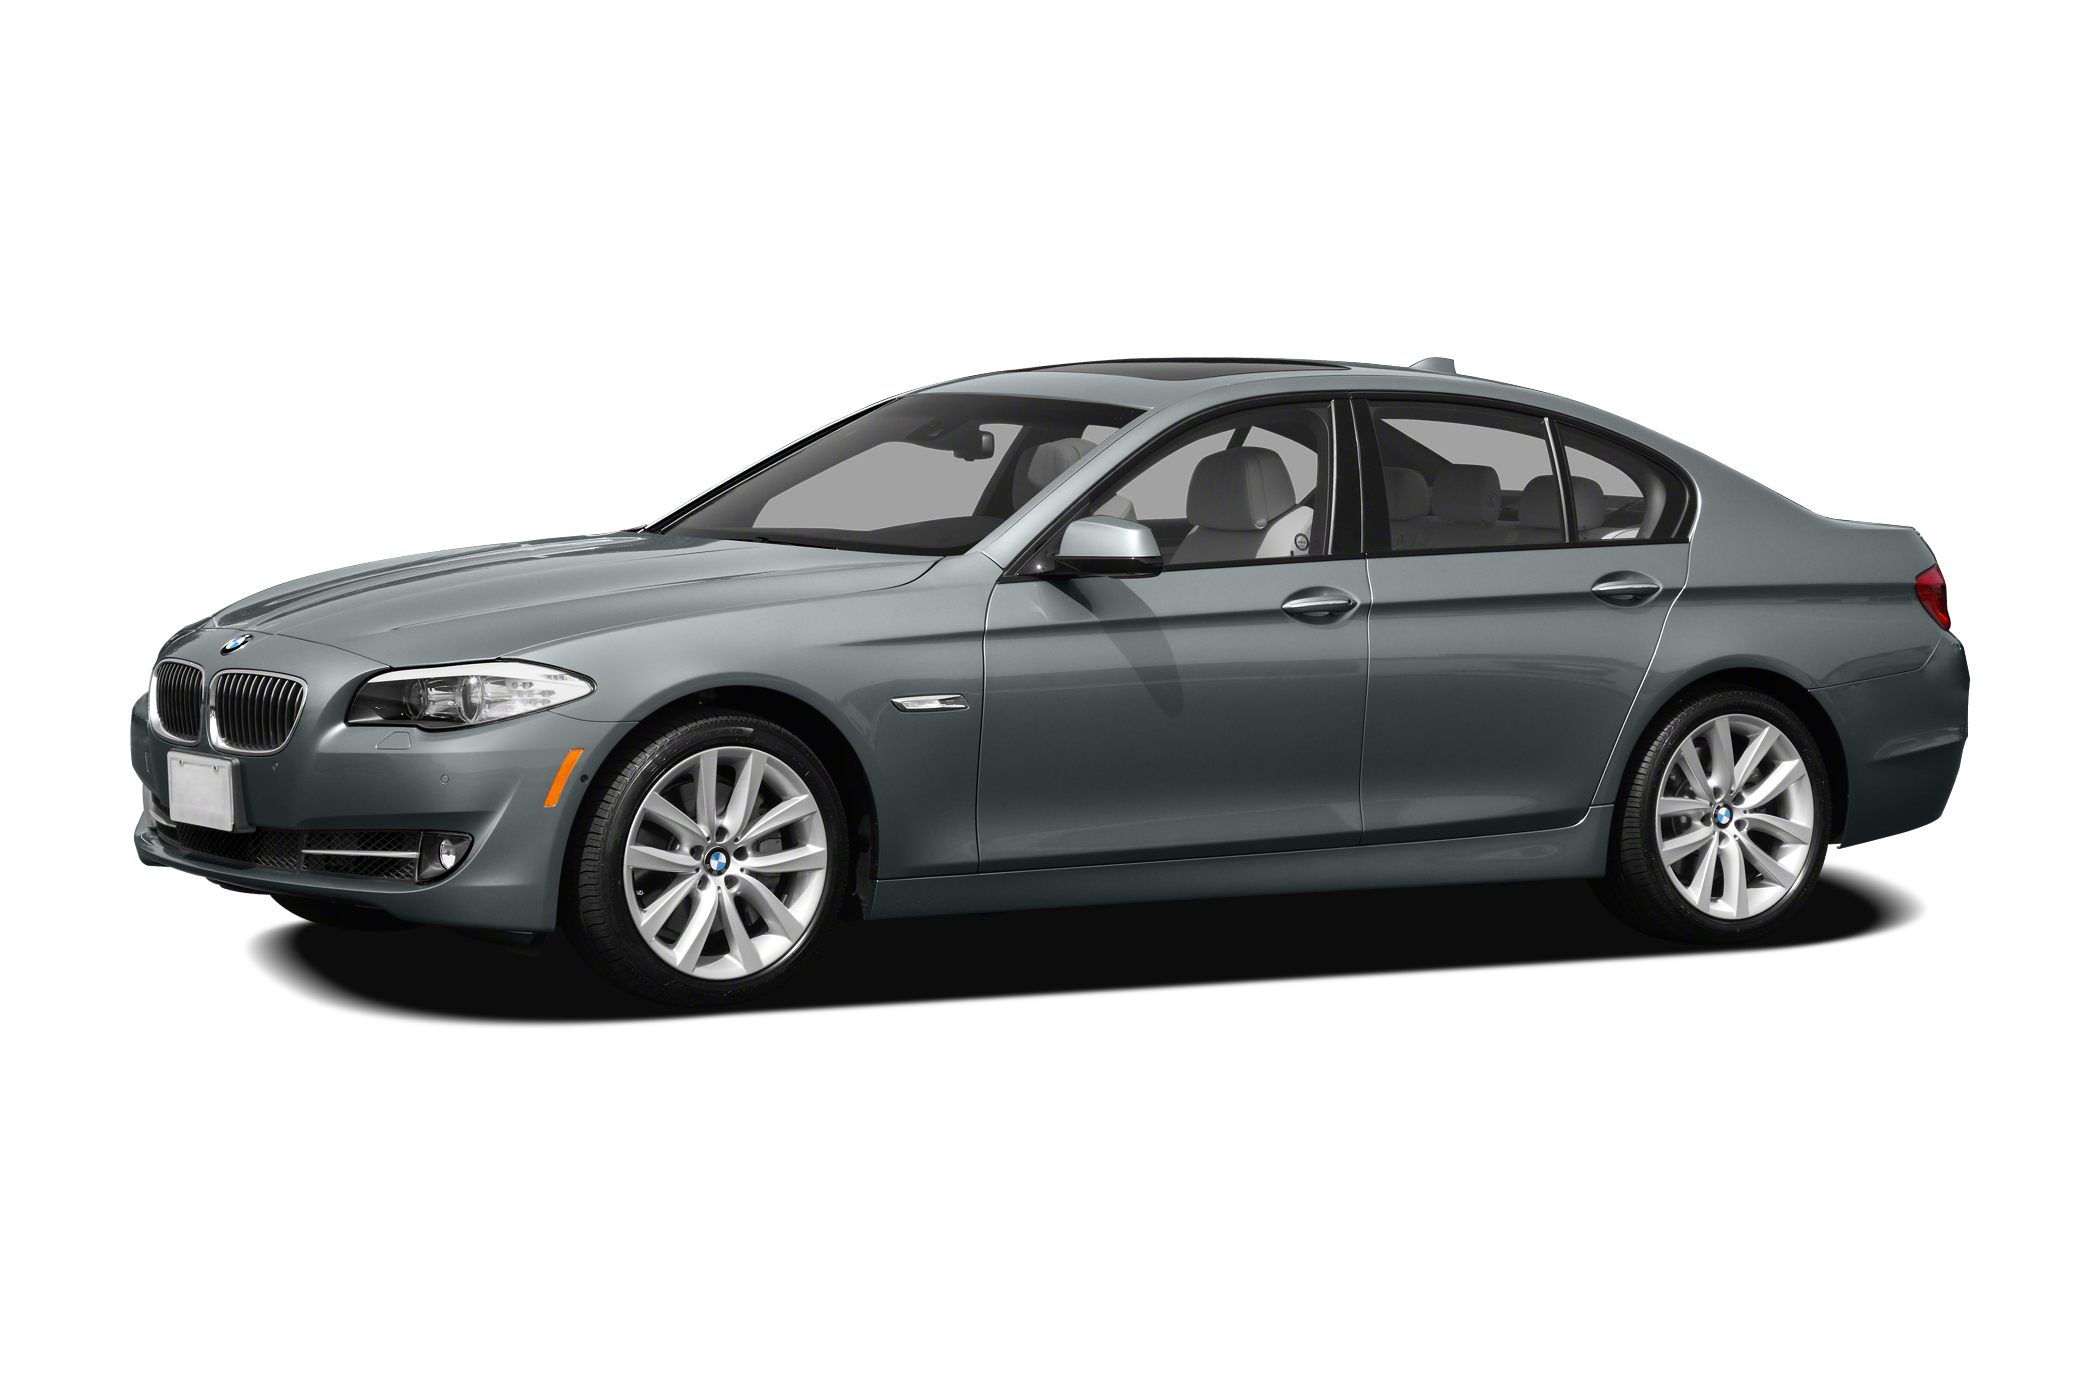 2011 BMW 5 Series 535i xDrive Visit Best Auto Group online at bronxbestautocom to see more pictur